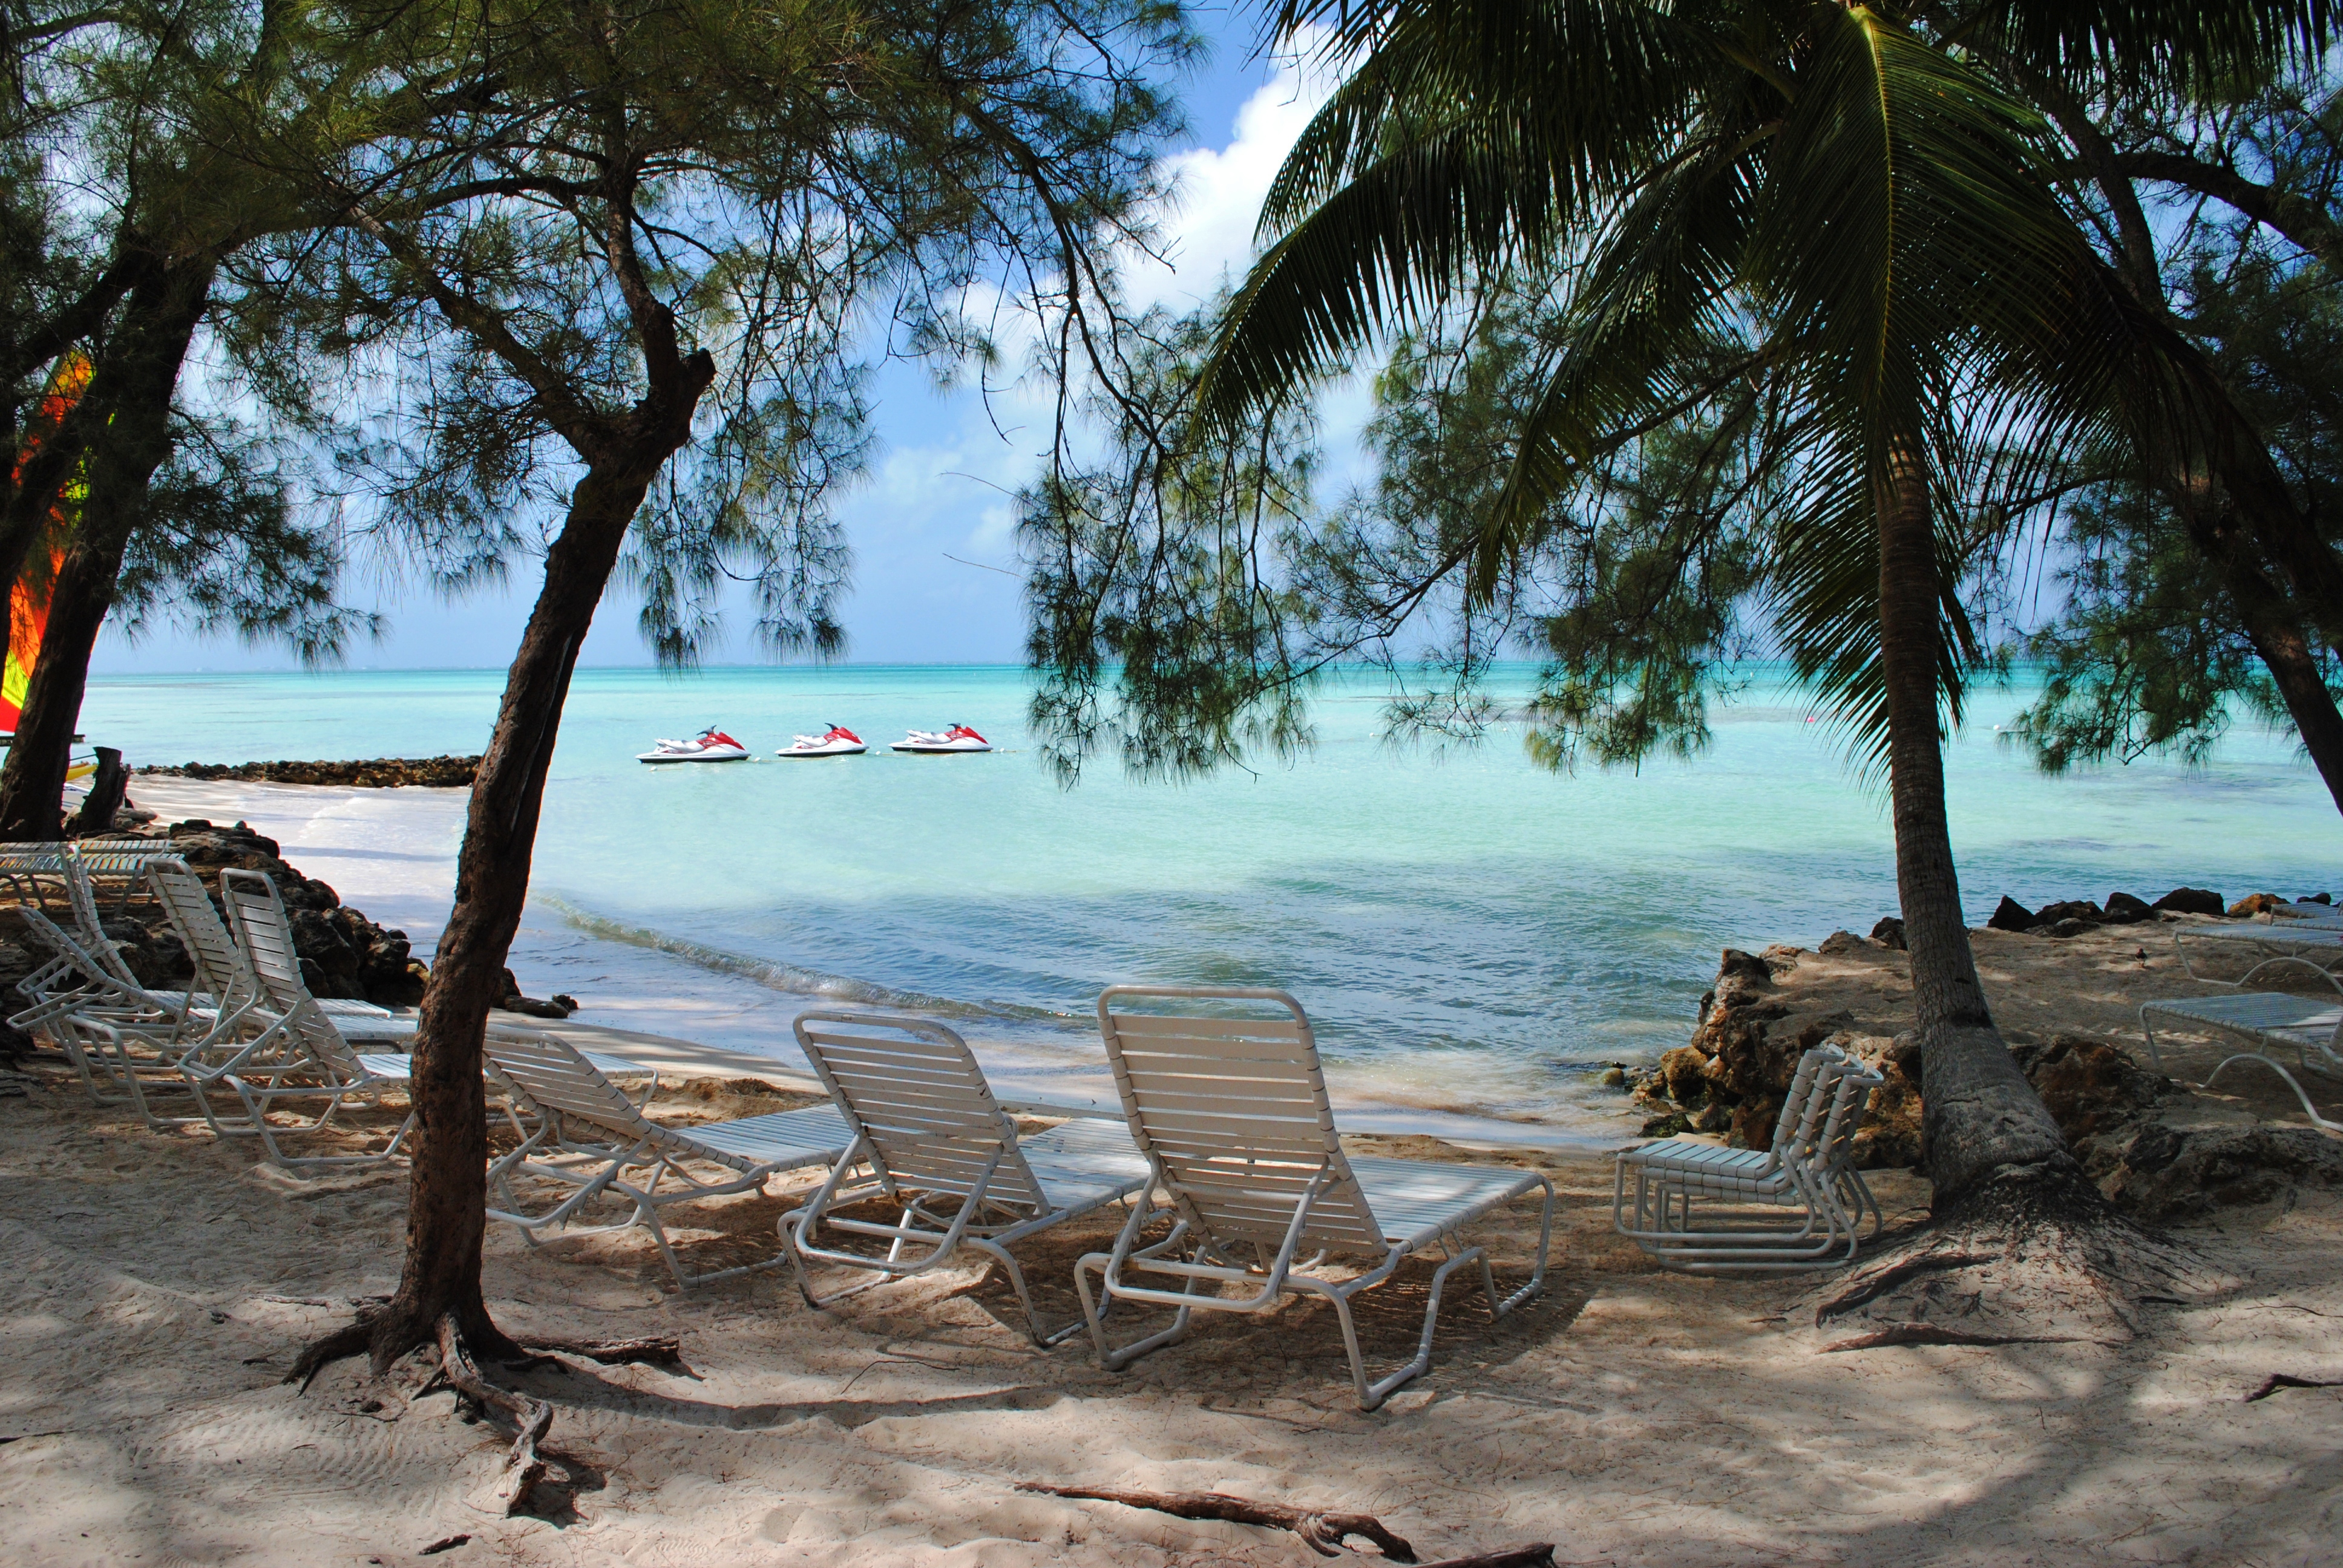 Grand Cayman Native Way S Rays Reefs And Rum Point Tour